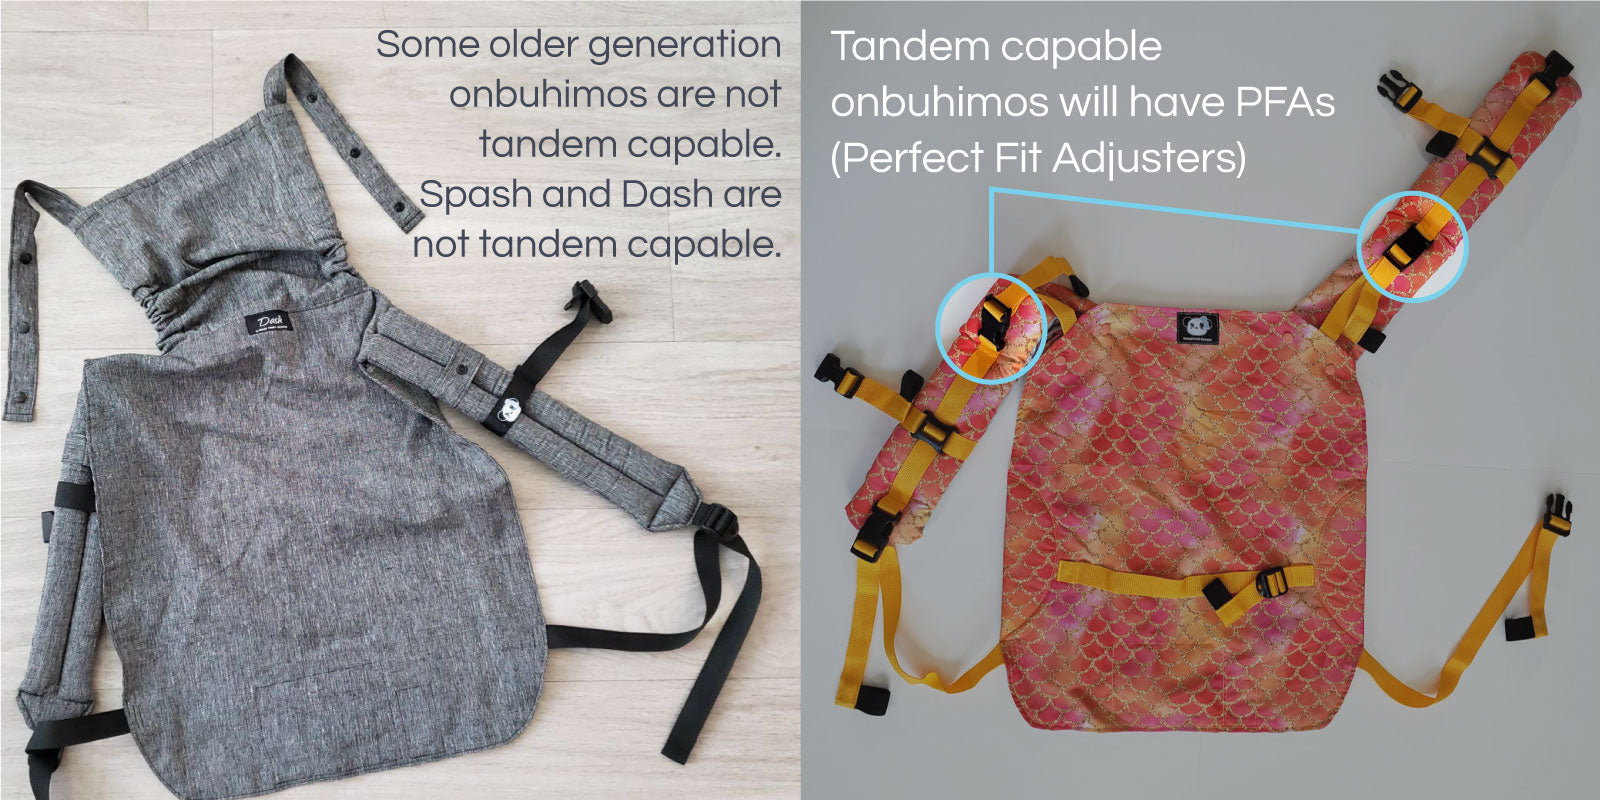 Tandem capable onbuhimos with have the perfect fit adjuster